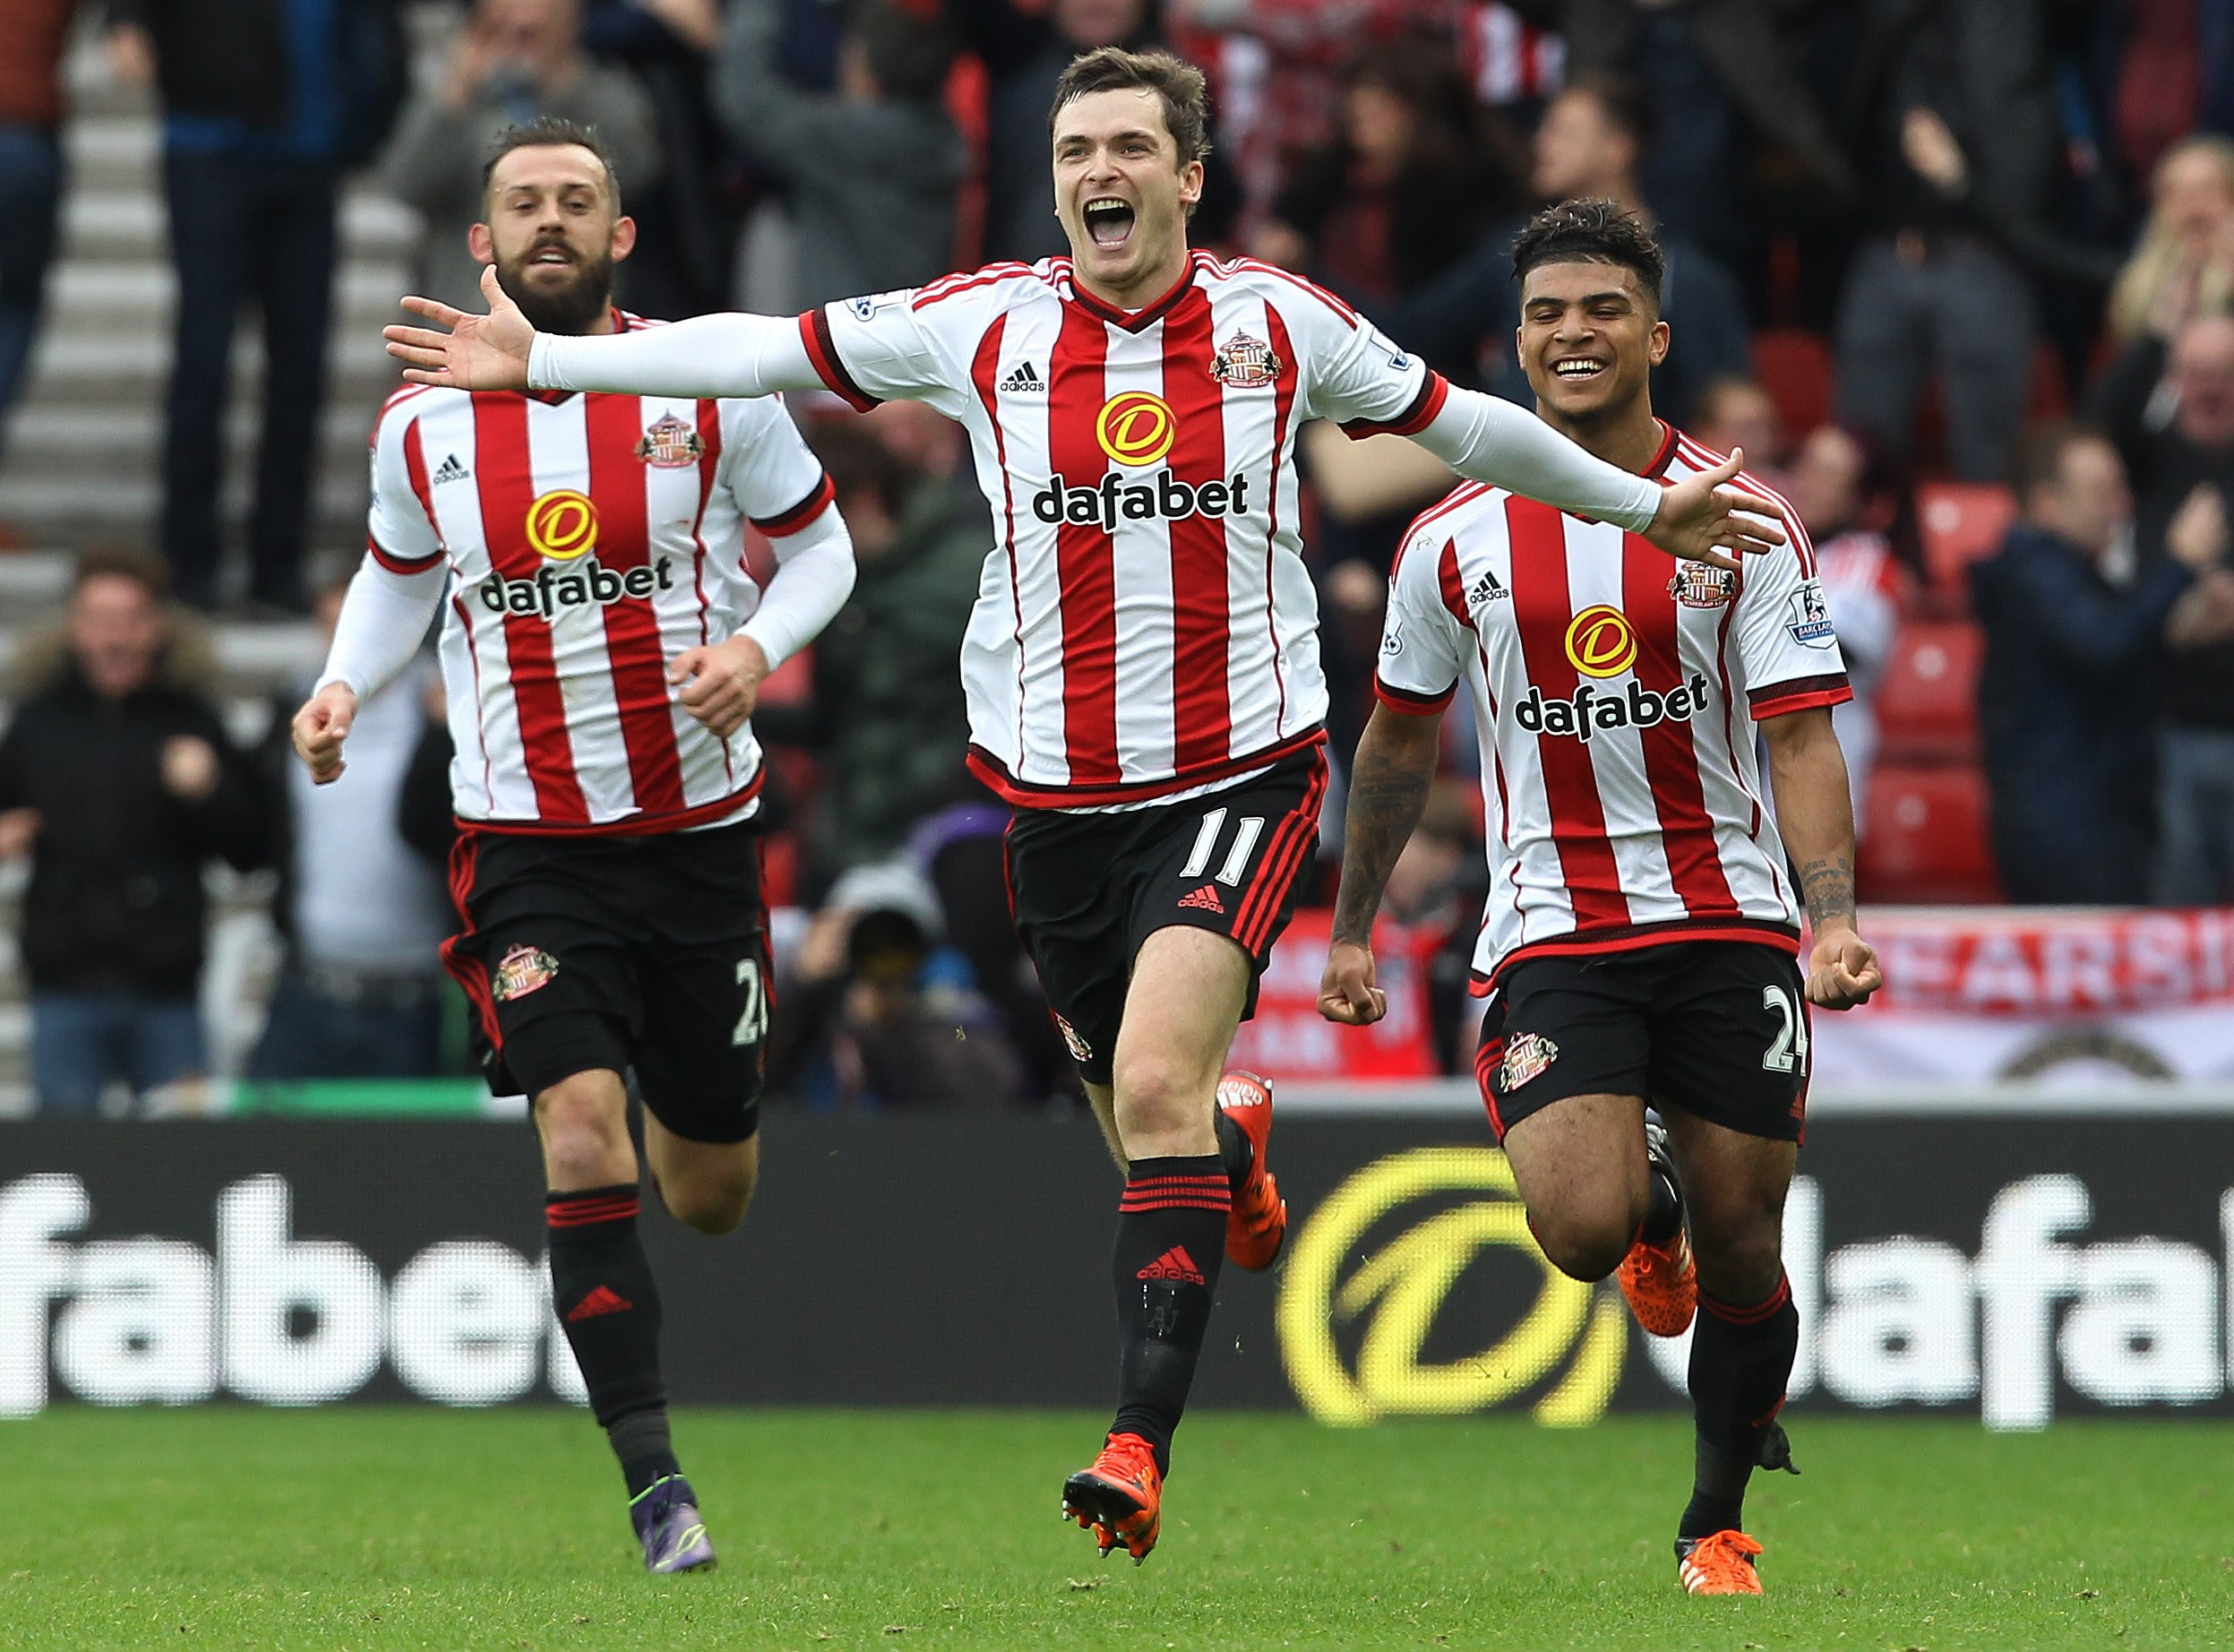 Video: Sunderland vs Newcastle United